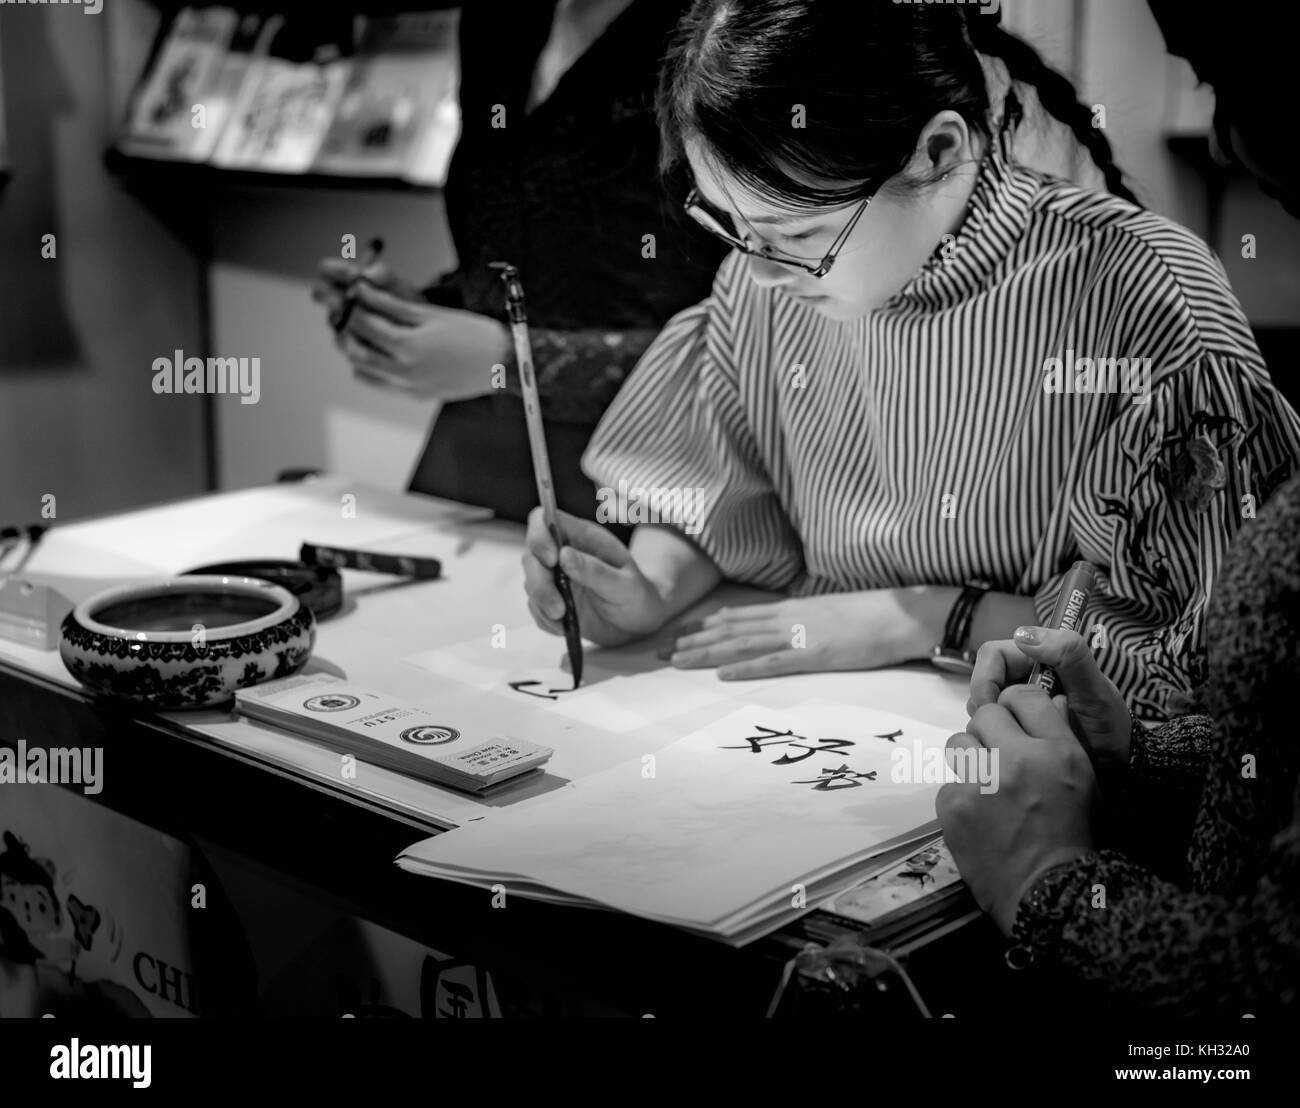 A black and white horizontal image of a Chinese girl writing/drawing calligraphy in a class room. - Stock Image